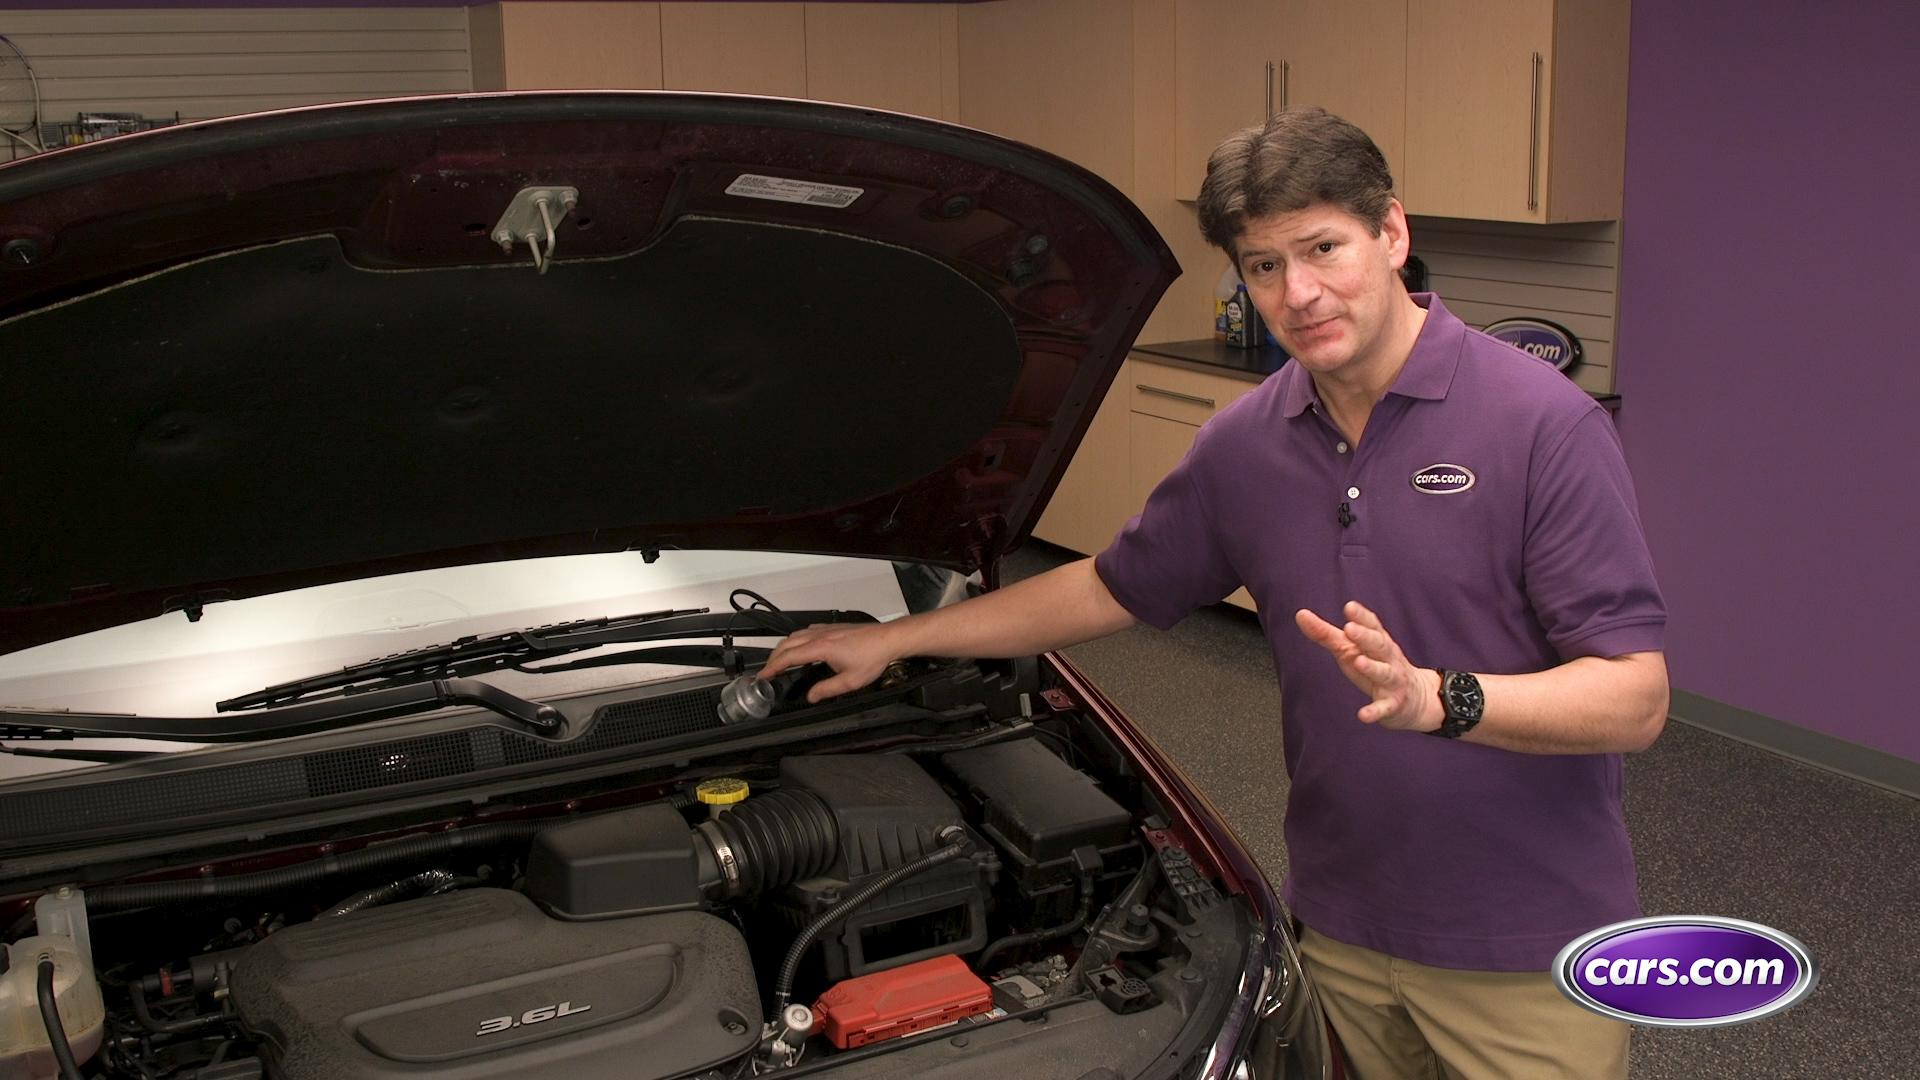 Video: Tips for Starting Your Car in Subzero Temperatures